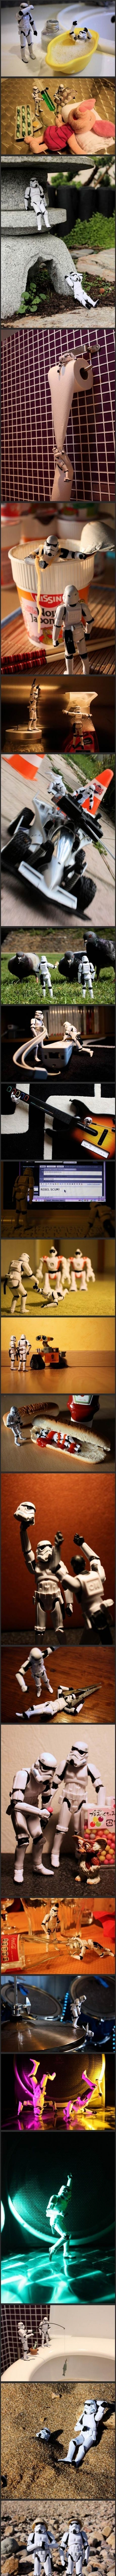 Storm troopers - A day in the life. [I enjoy encountering those who also have way too much time on their hands.]